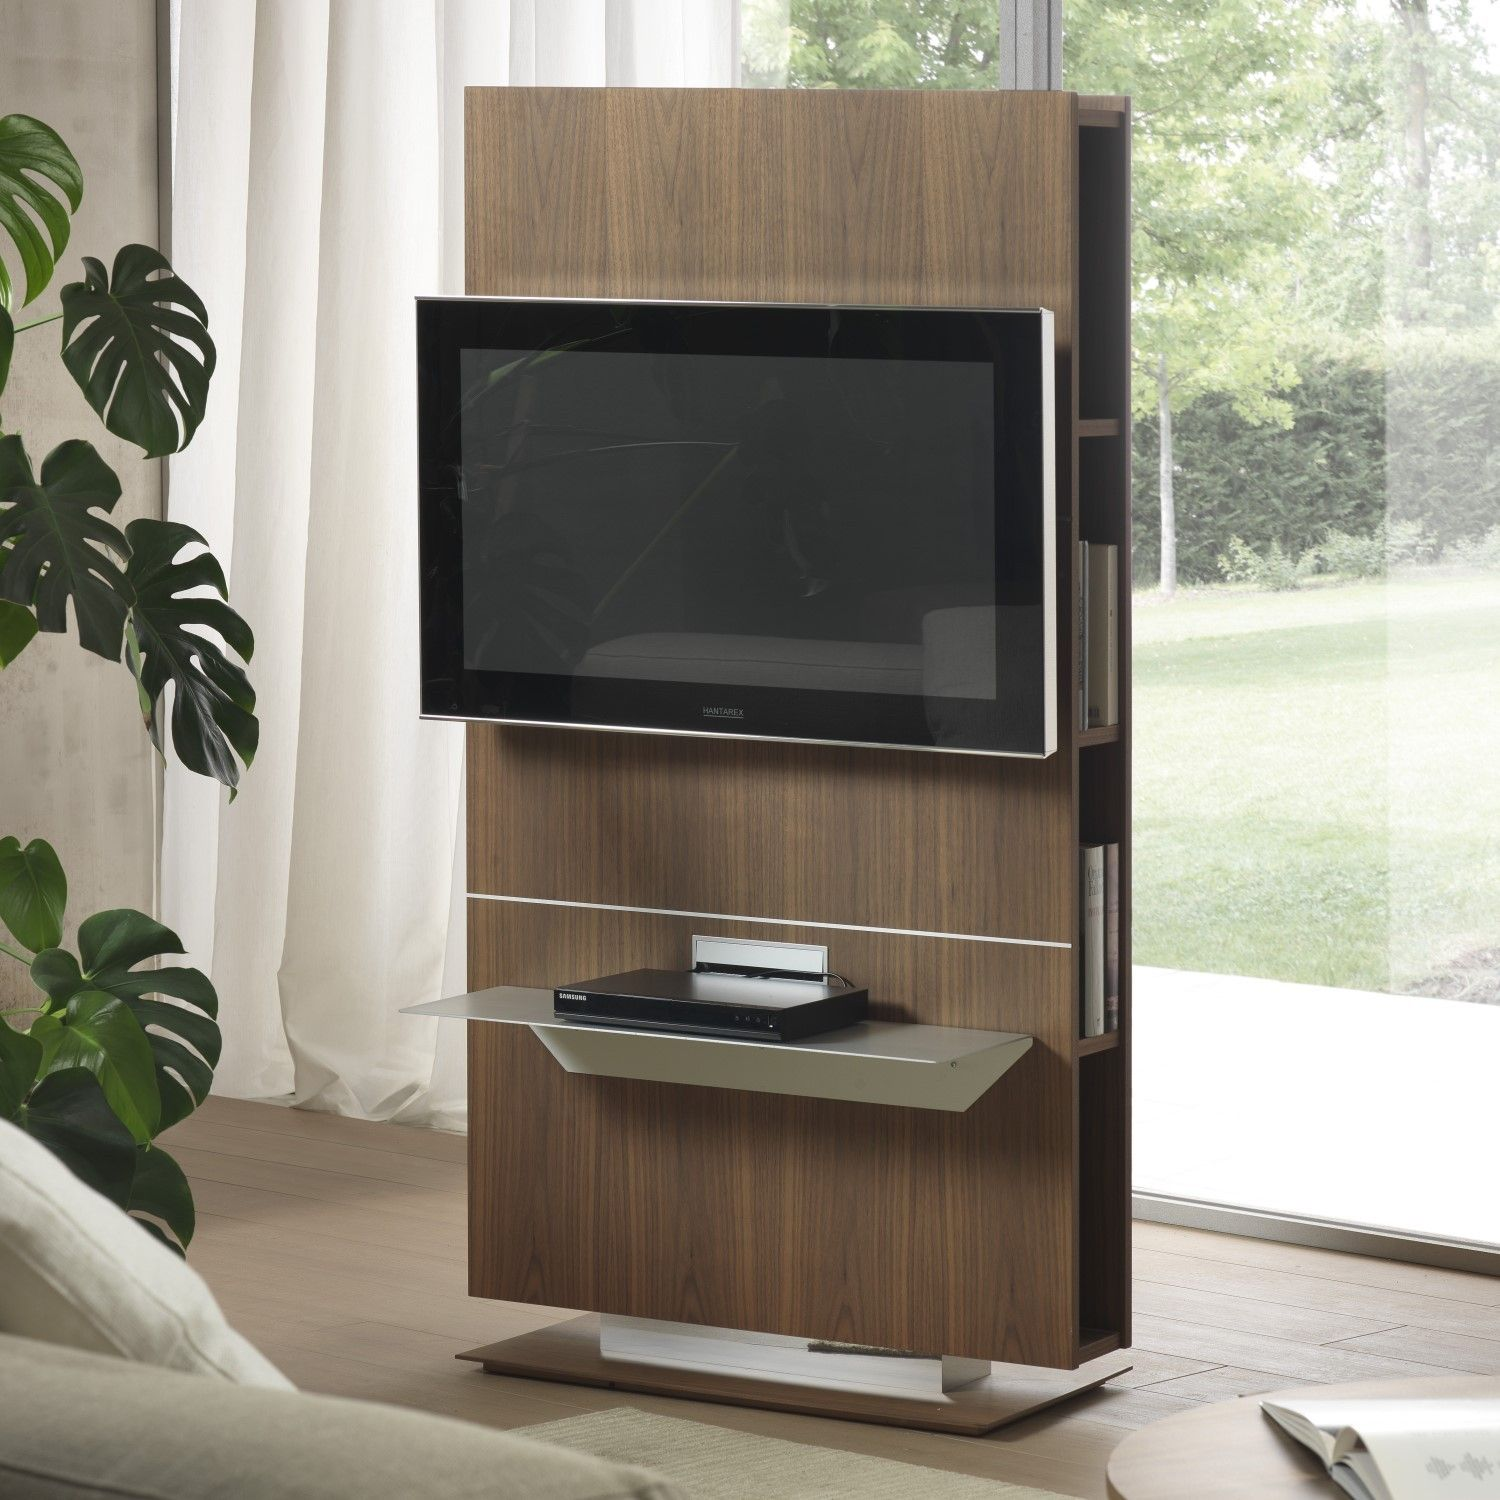 Porta Tv orientabile con libreria Lounge | arredo | Pinterest | TV ...